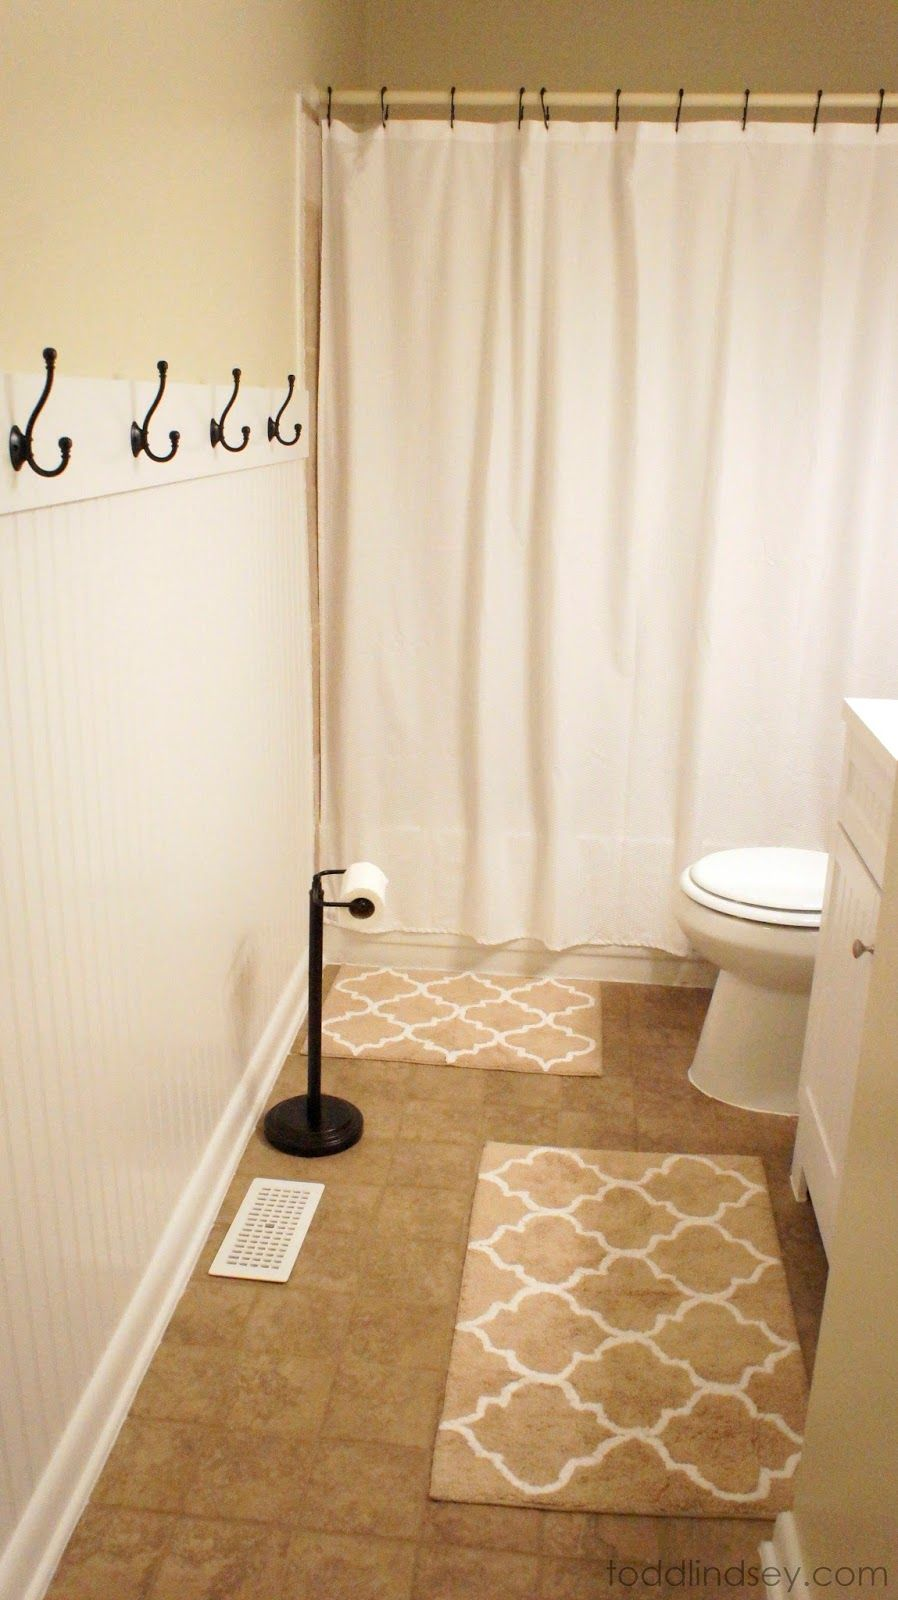 Beadboard Wall In Bathroom With Hooks For Towels